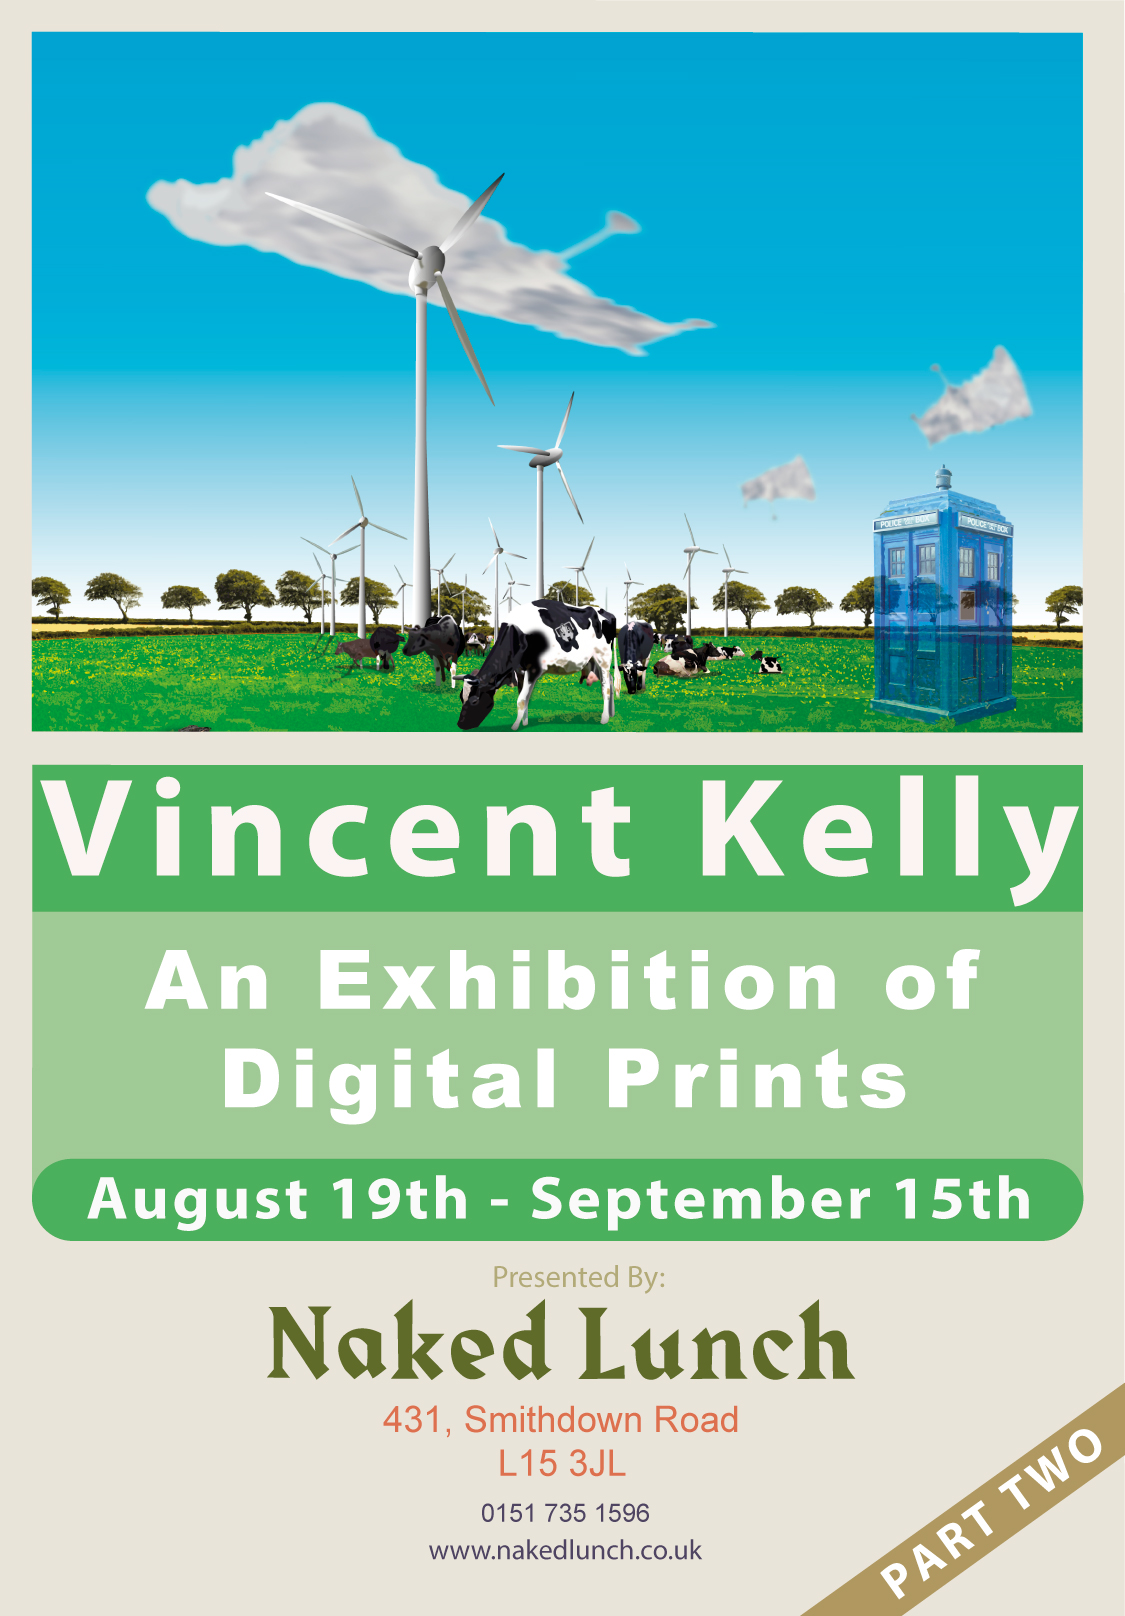 Naked Lunch: The Ruralists Vs Everything